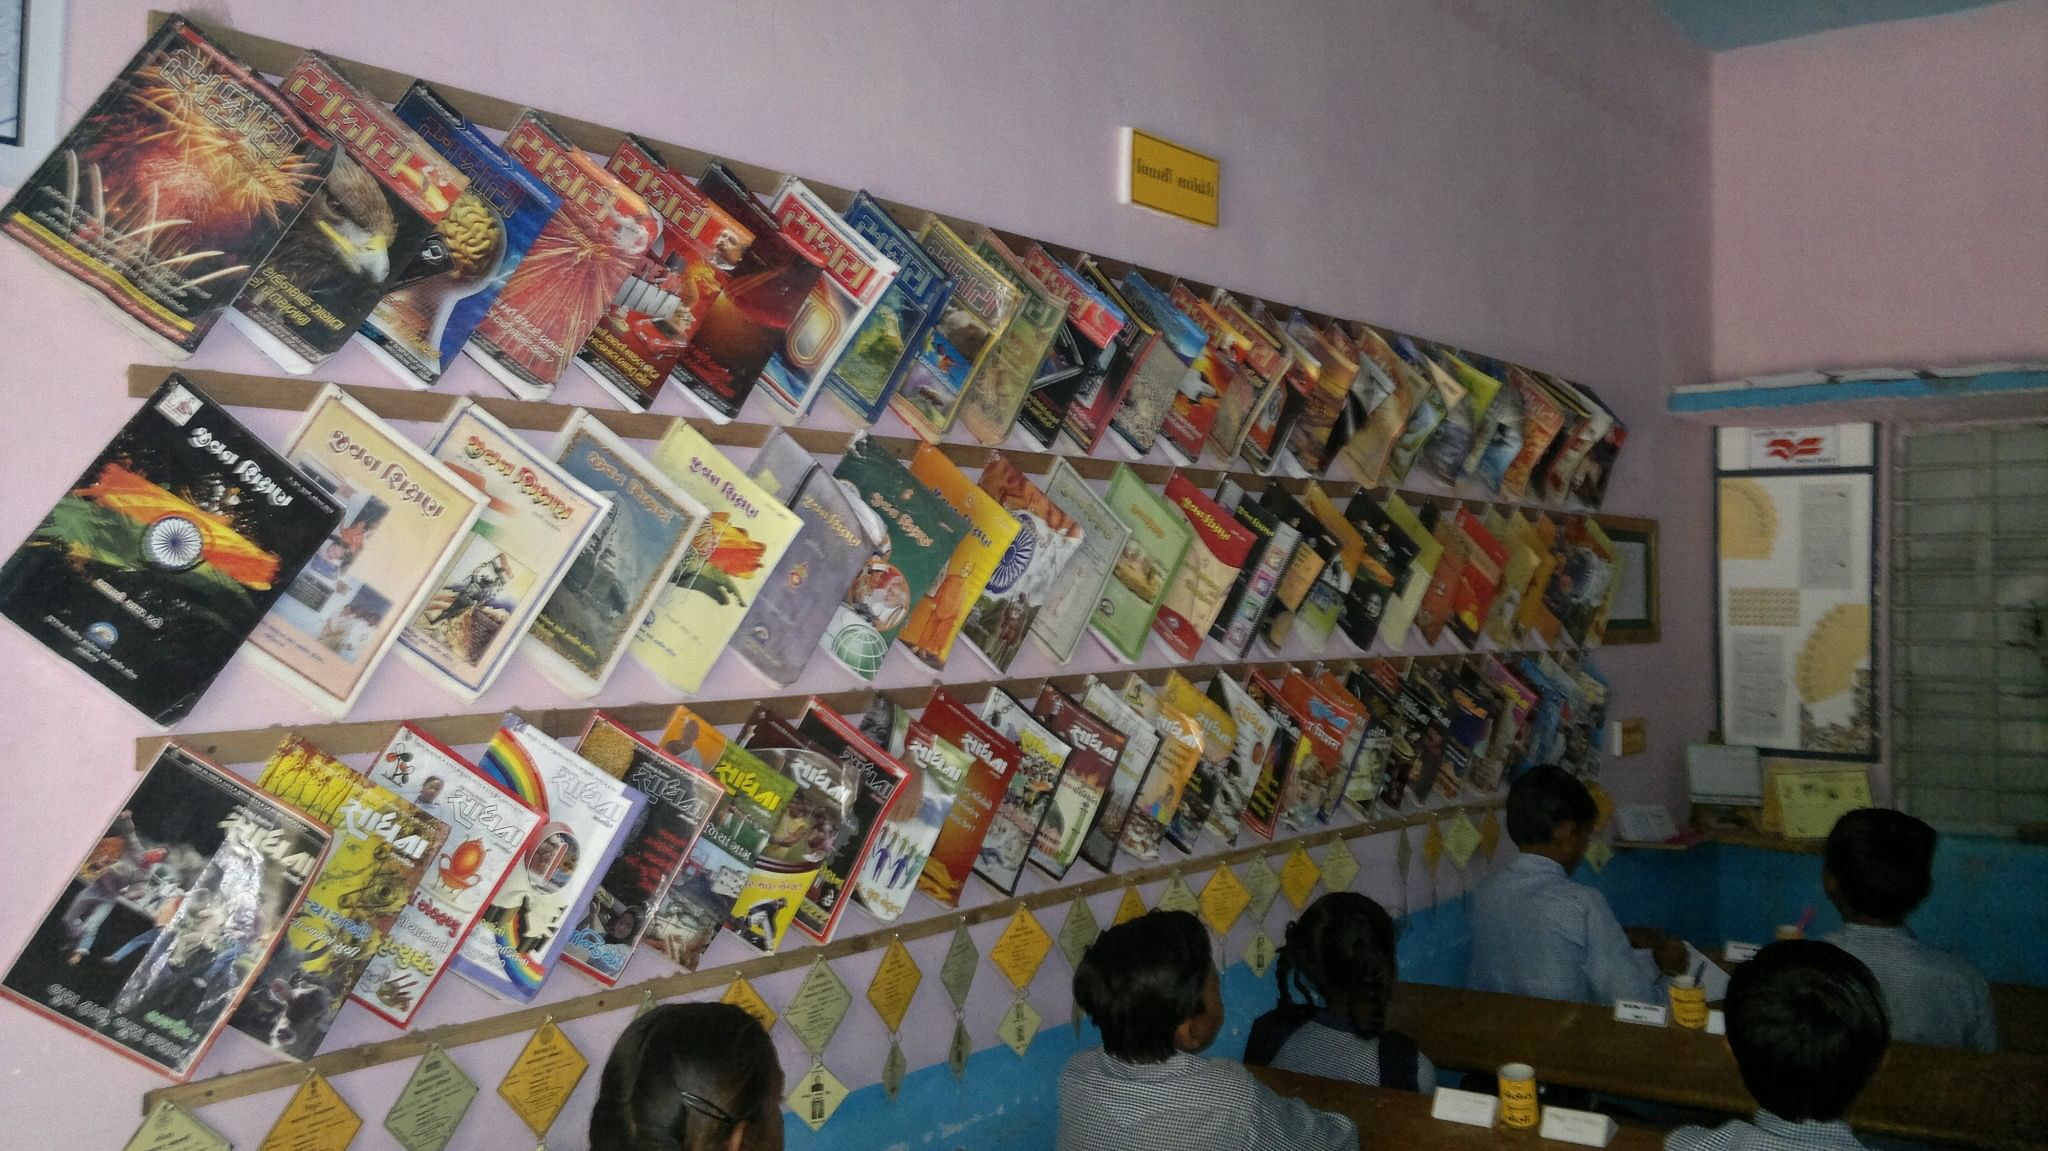 Every classroom has a separate library to make the books easily accessible.